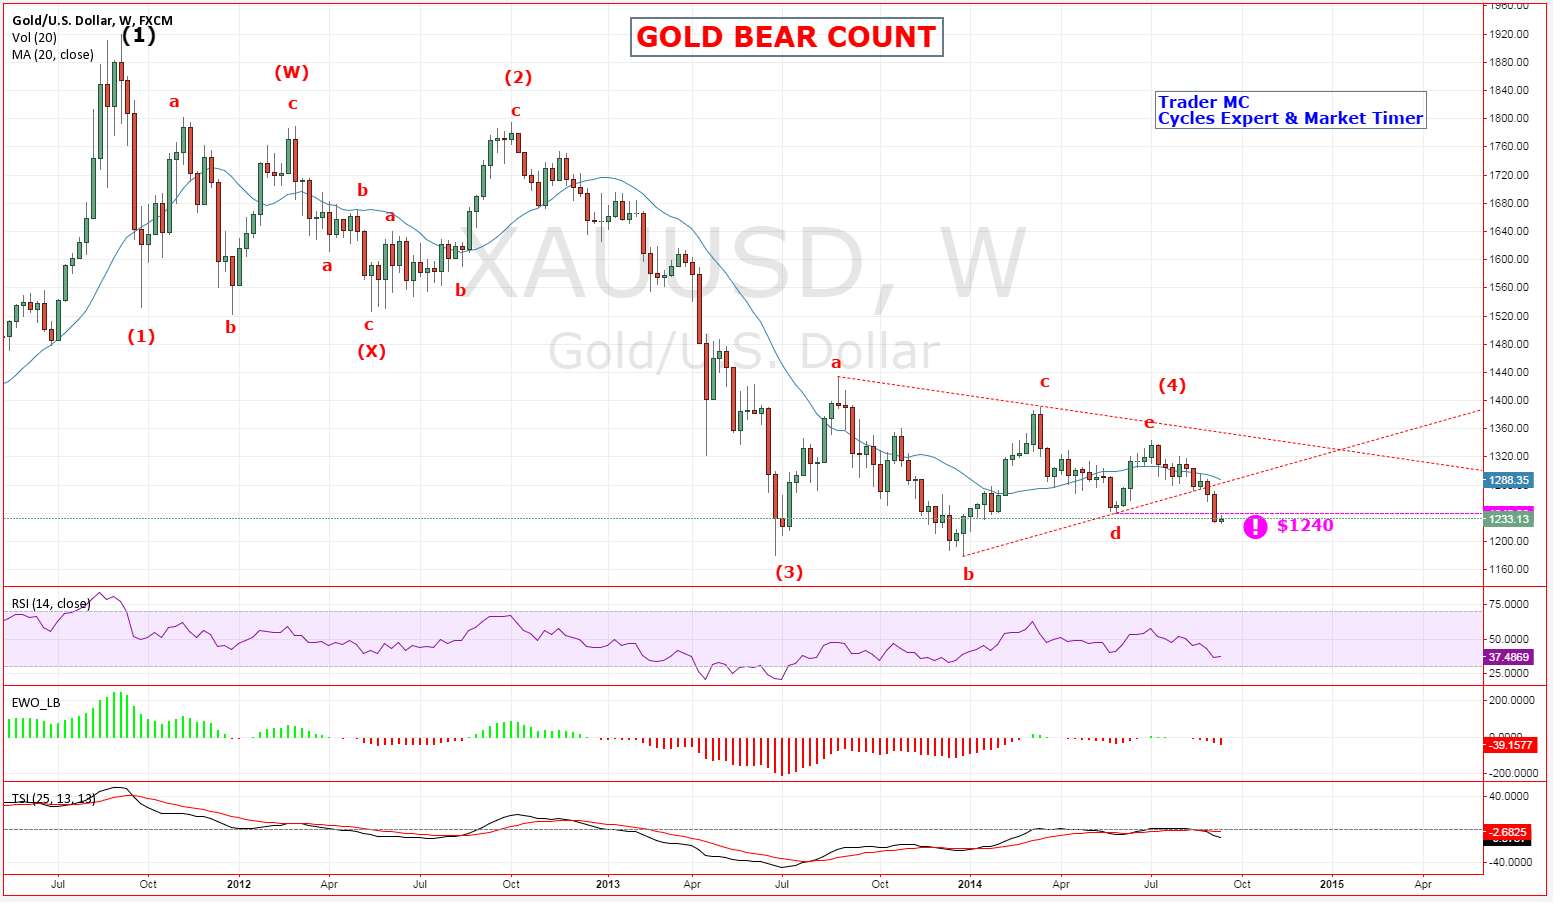 Gold: Bear Count